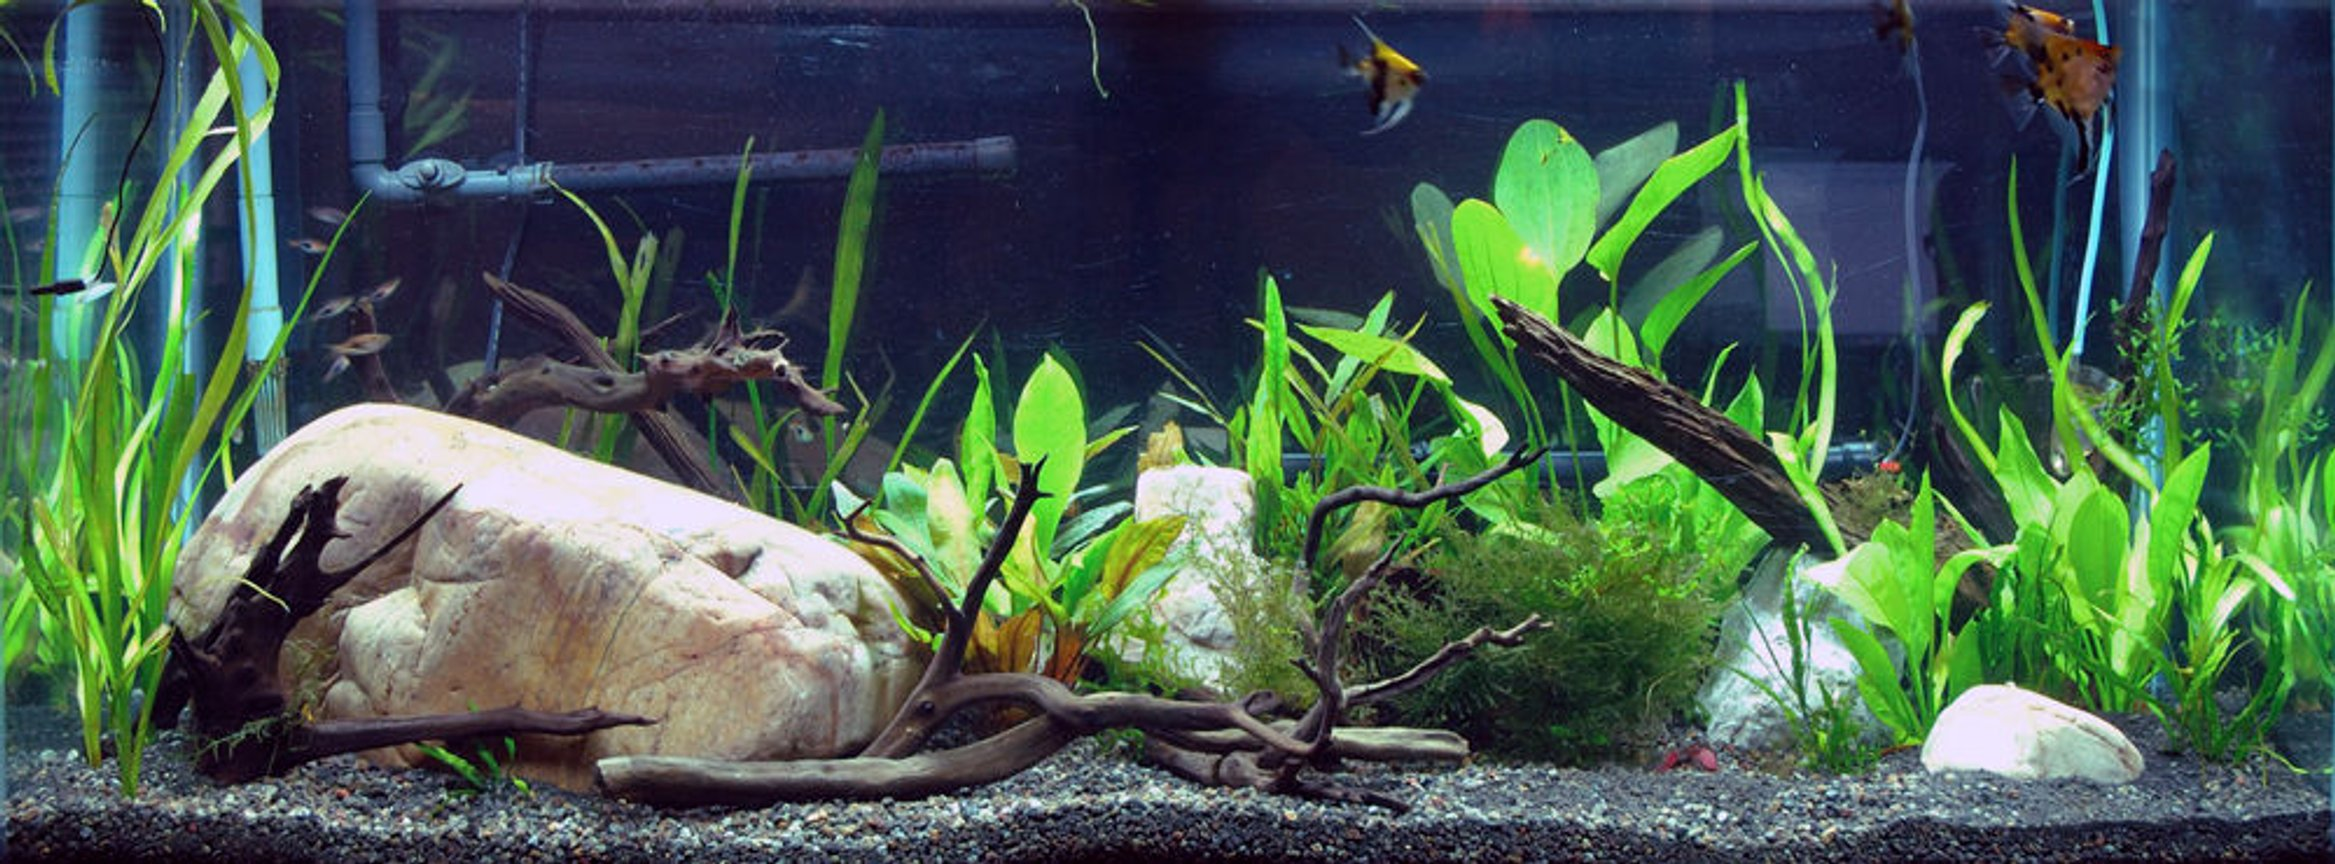 75 gallons planted tank (mostly live plants and fish) - My big 75 gallon tank.